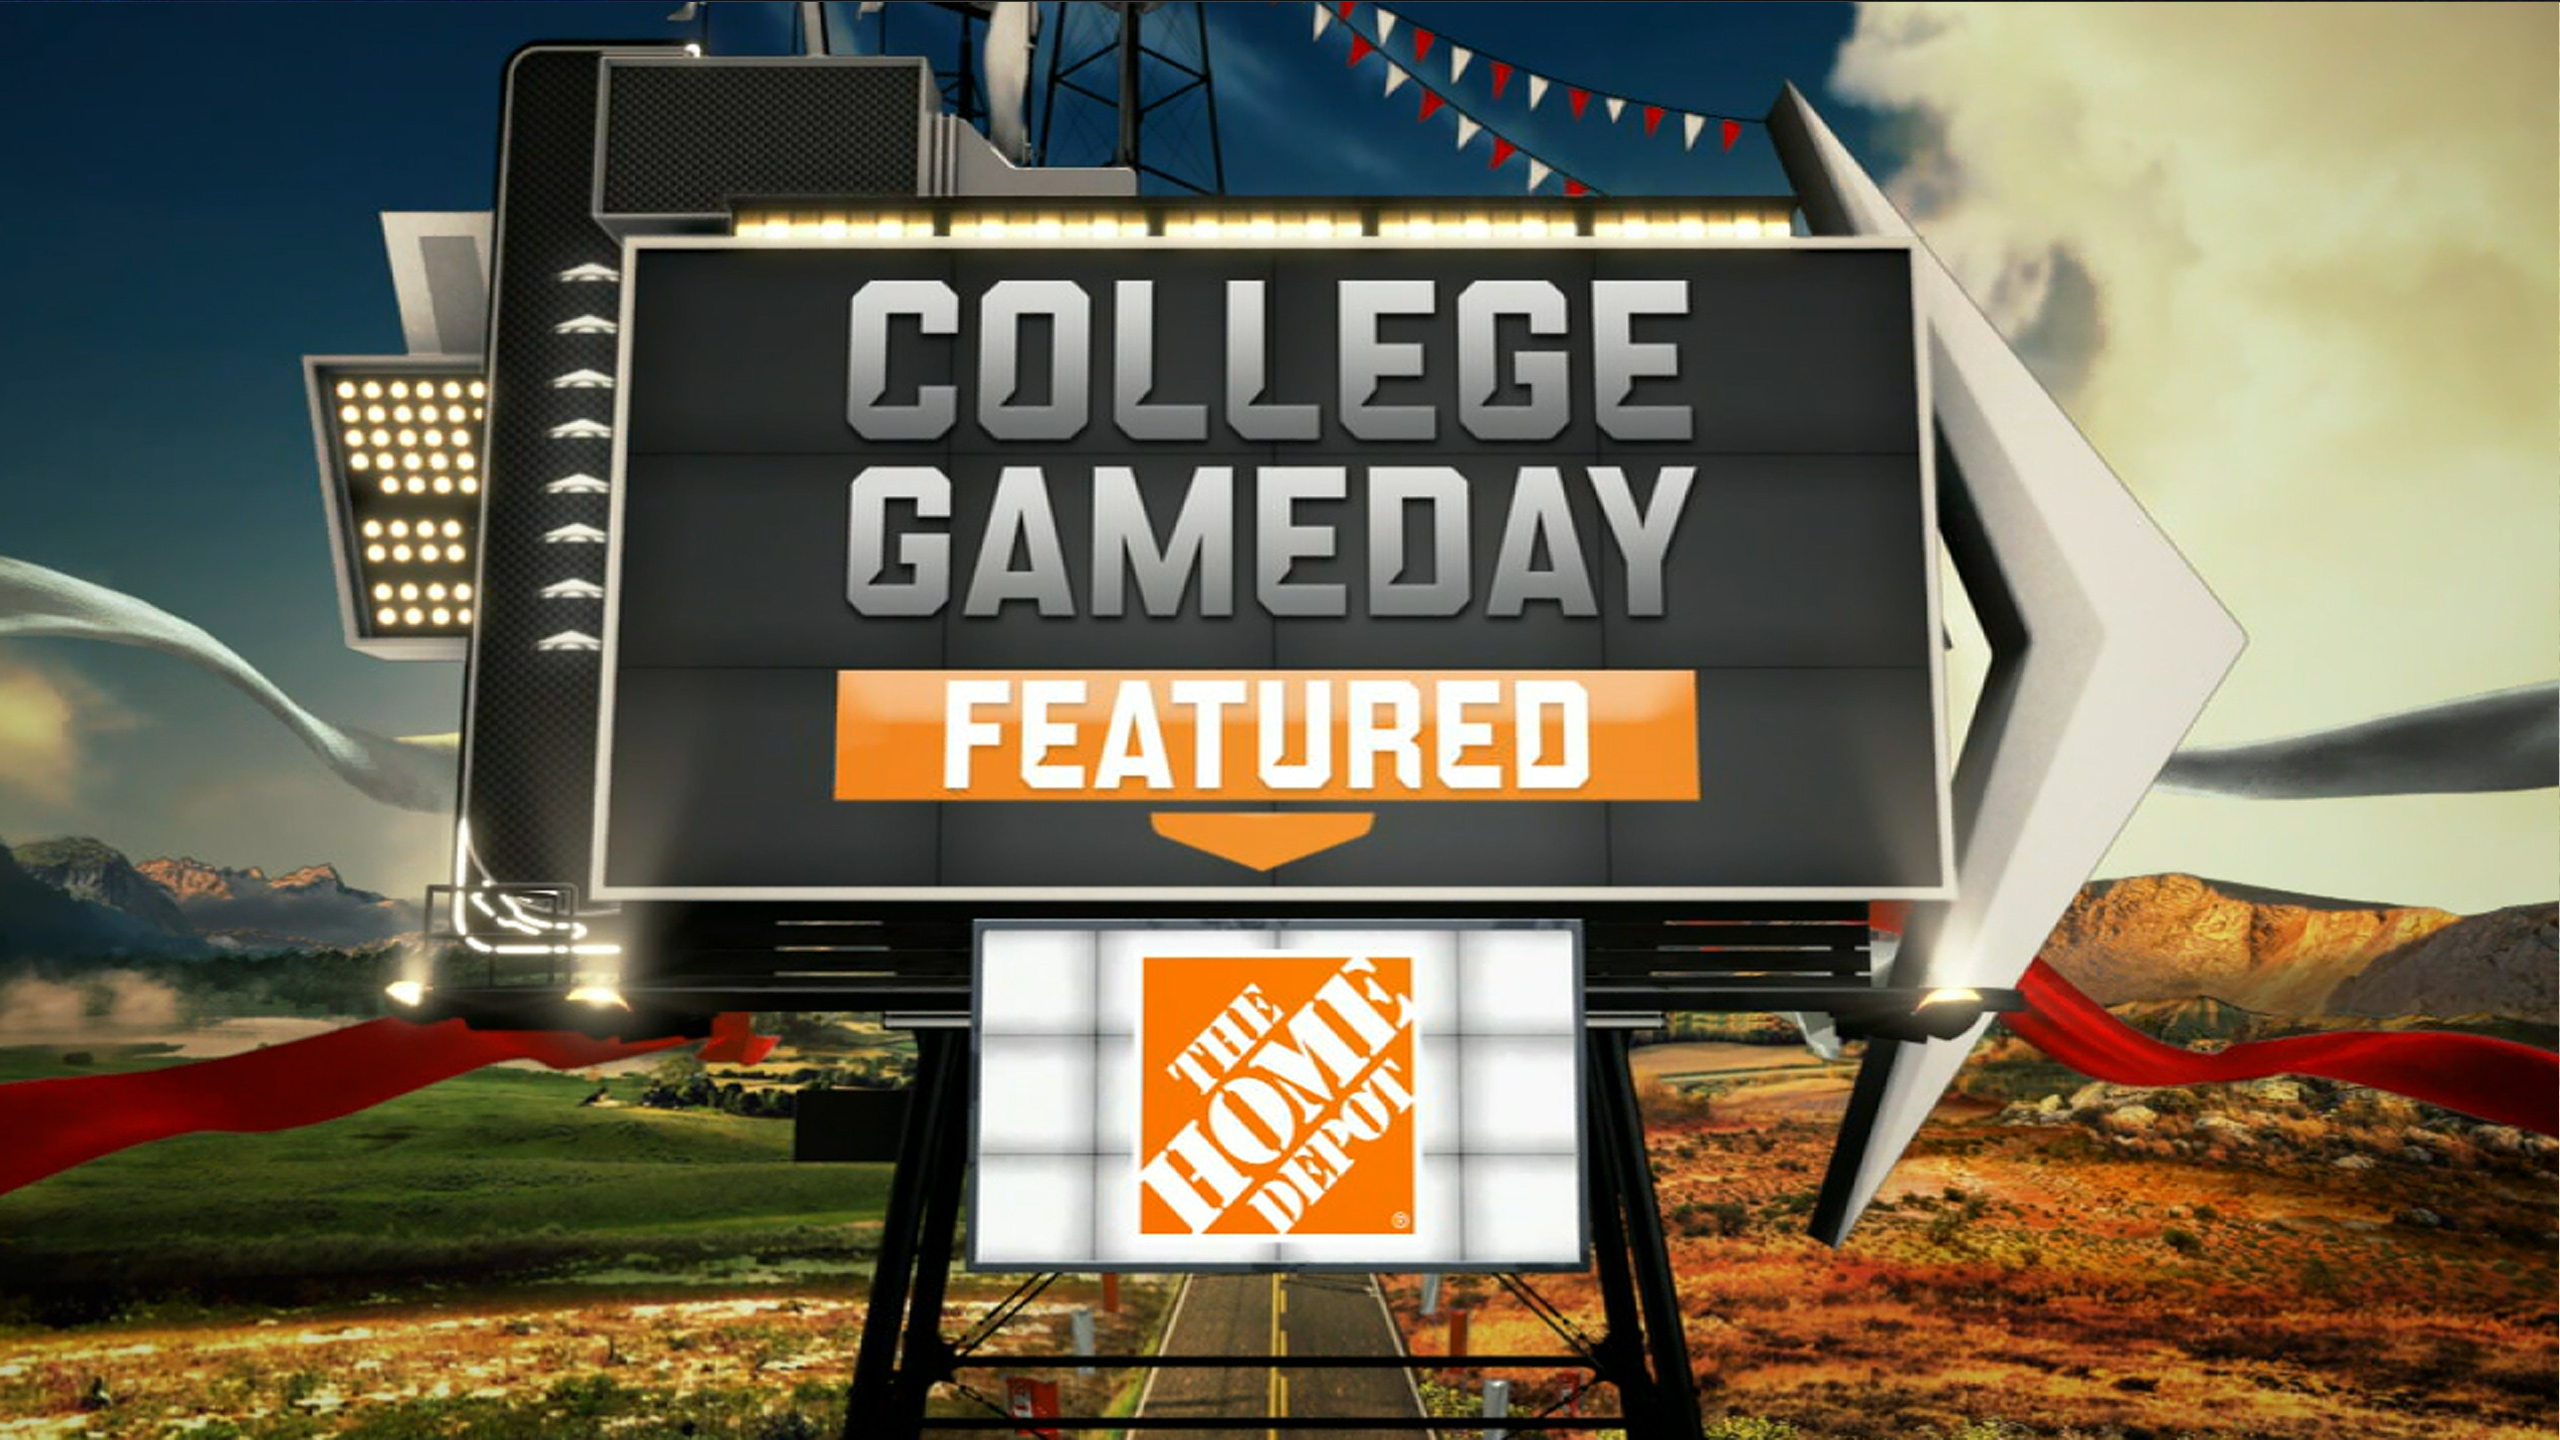 Sat, 12/15 - College GameDay Featured Built by The Home Depot